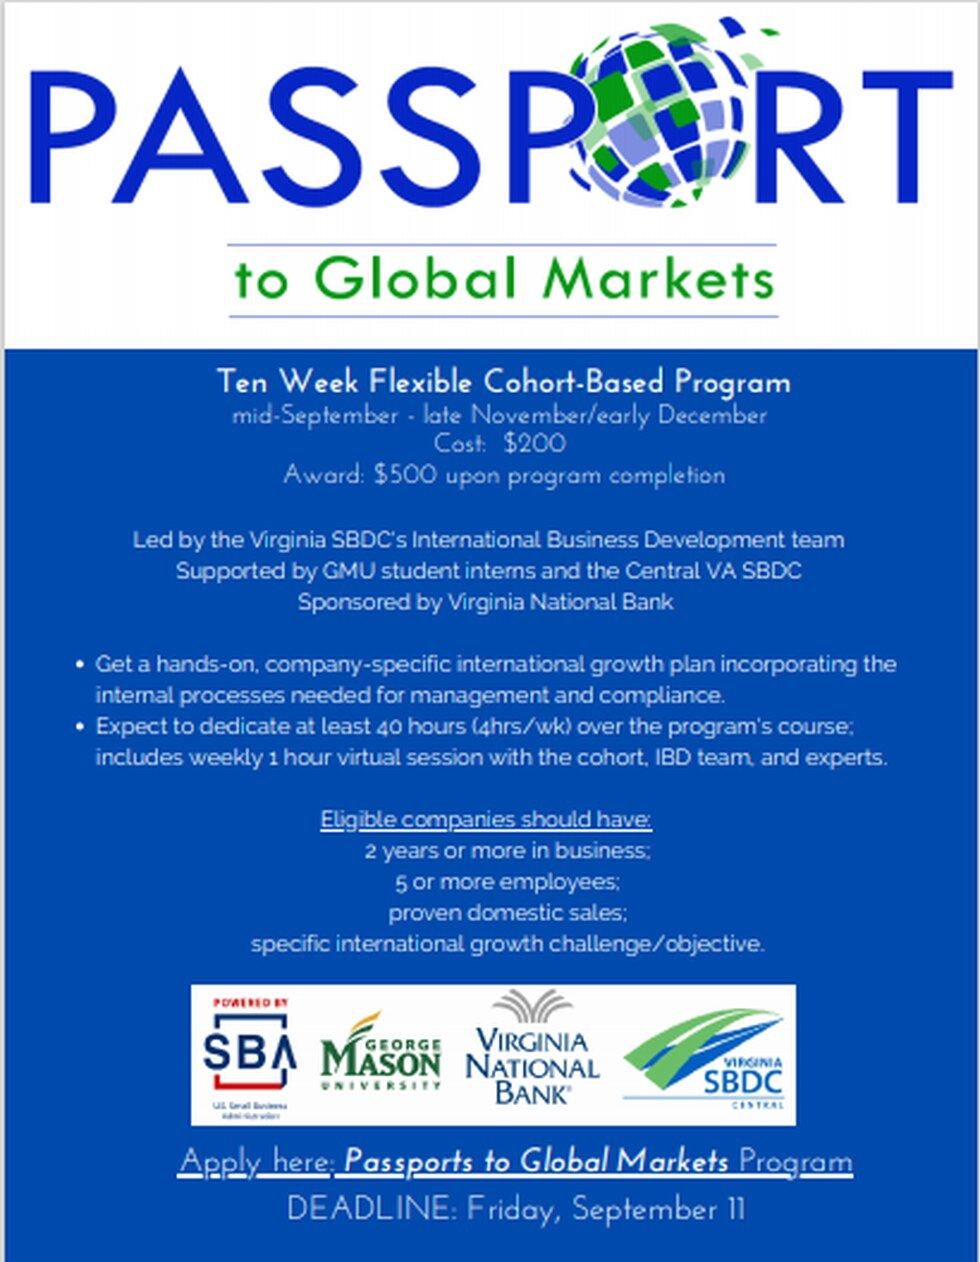 A flyer for the Passport to Global Markets program.